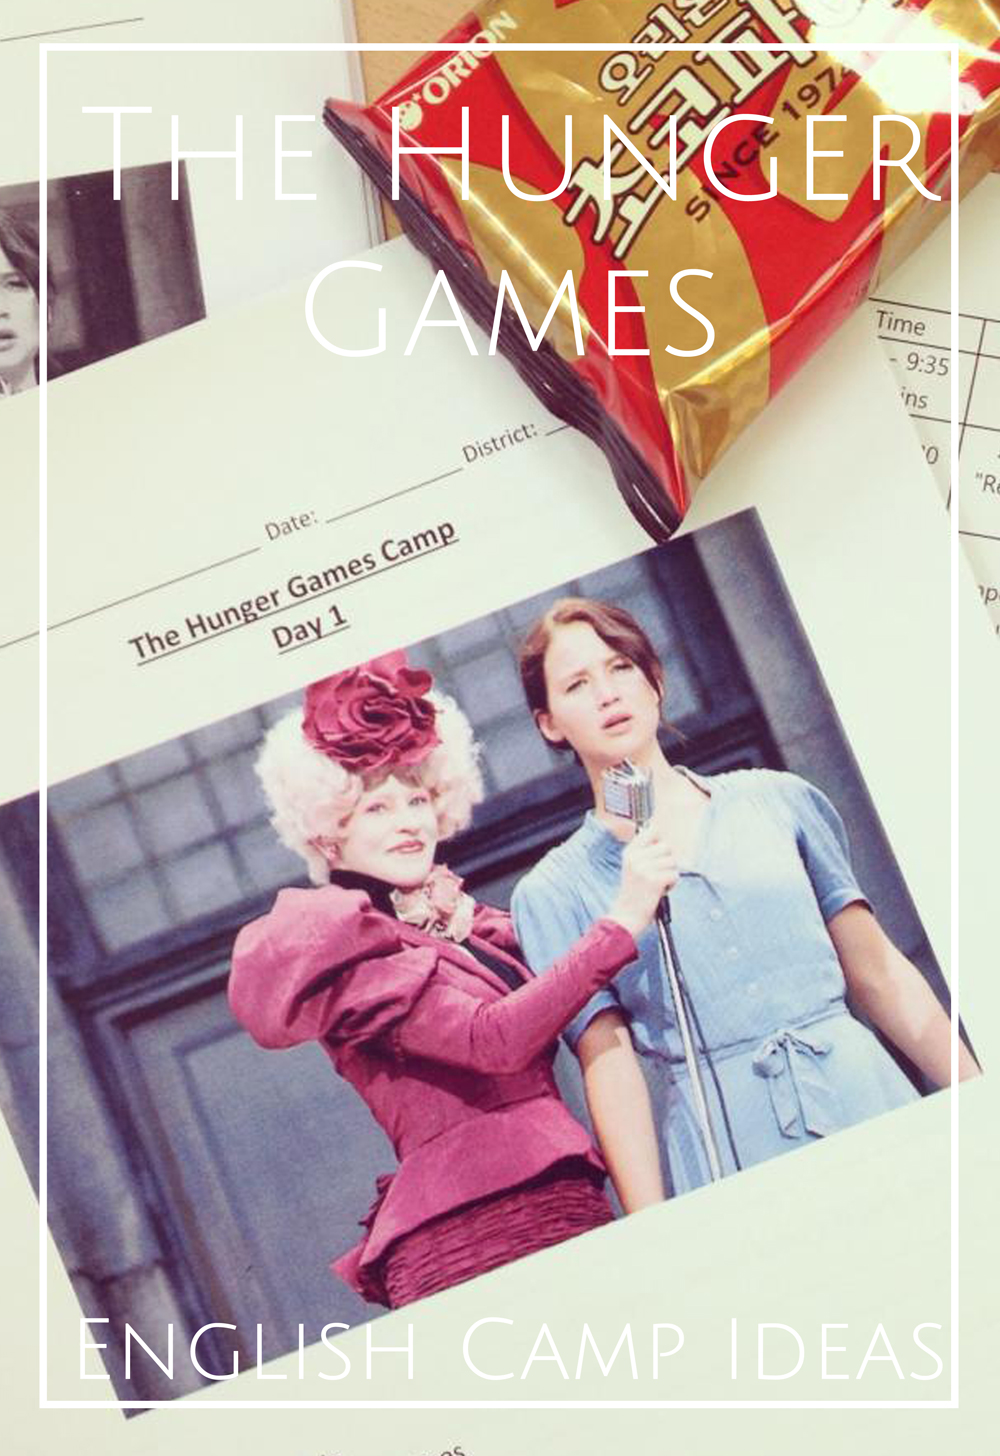 The HUnger Games English Camp ideas for teaching english in korea